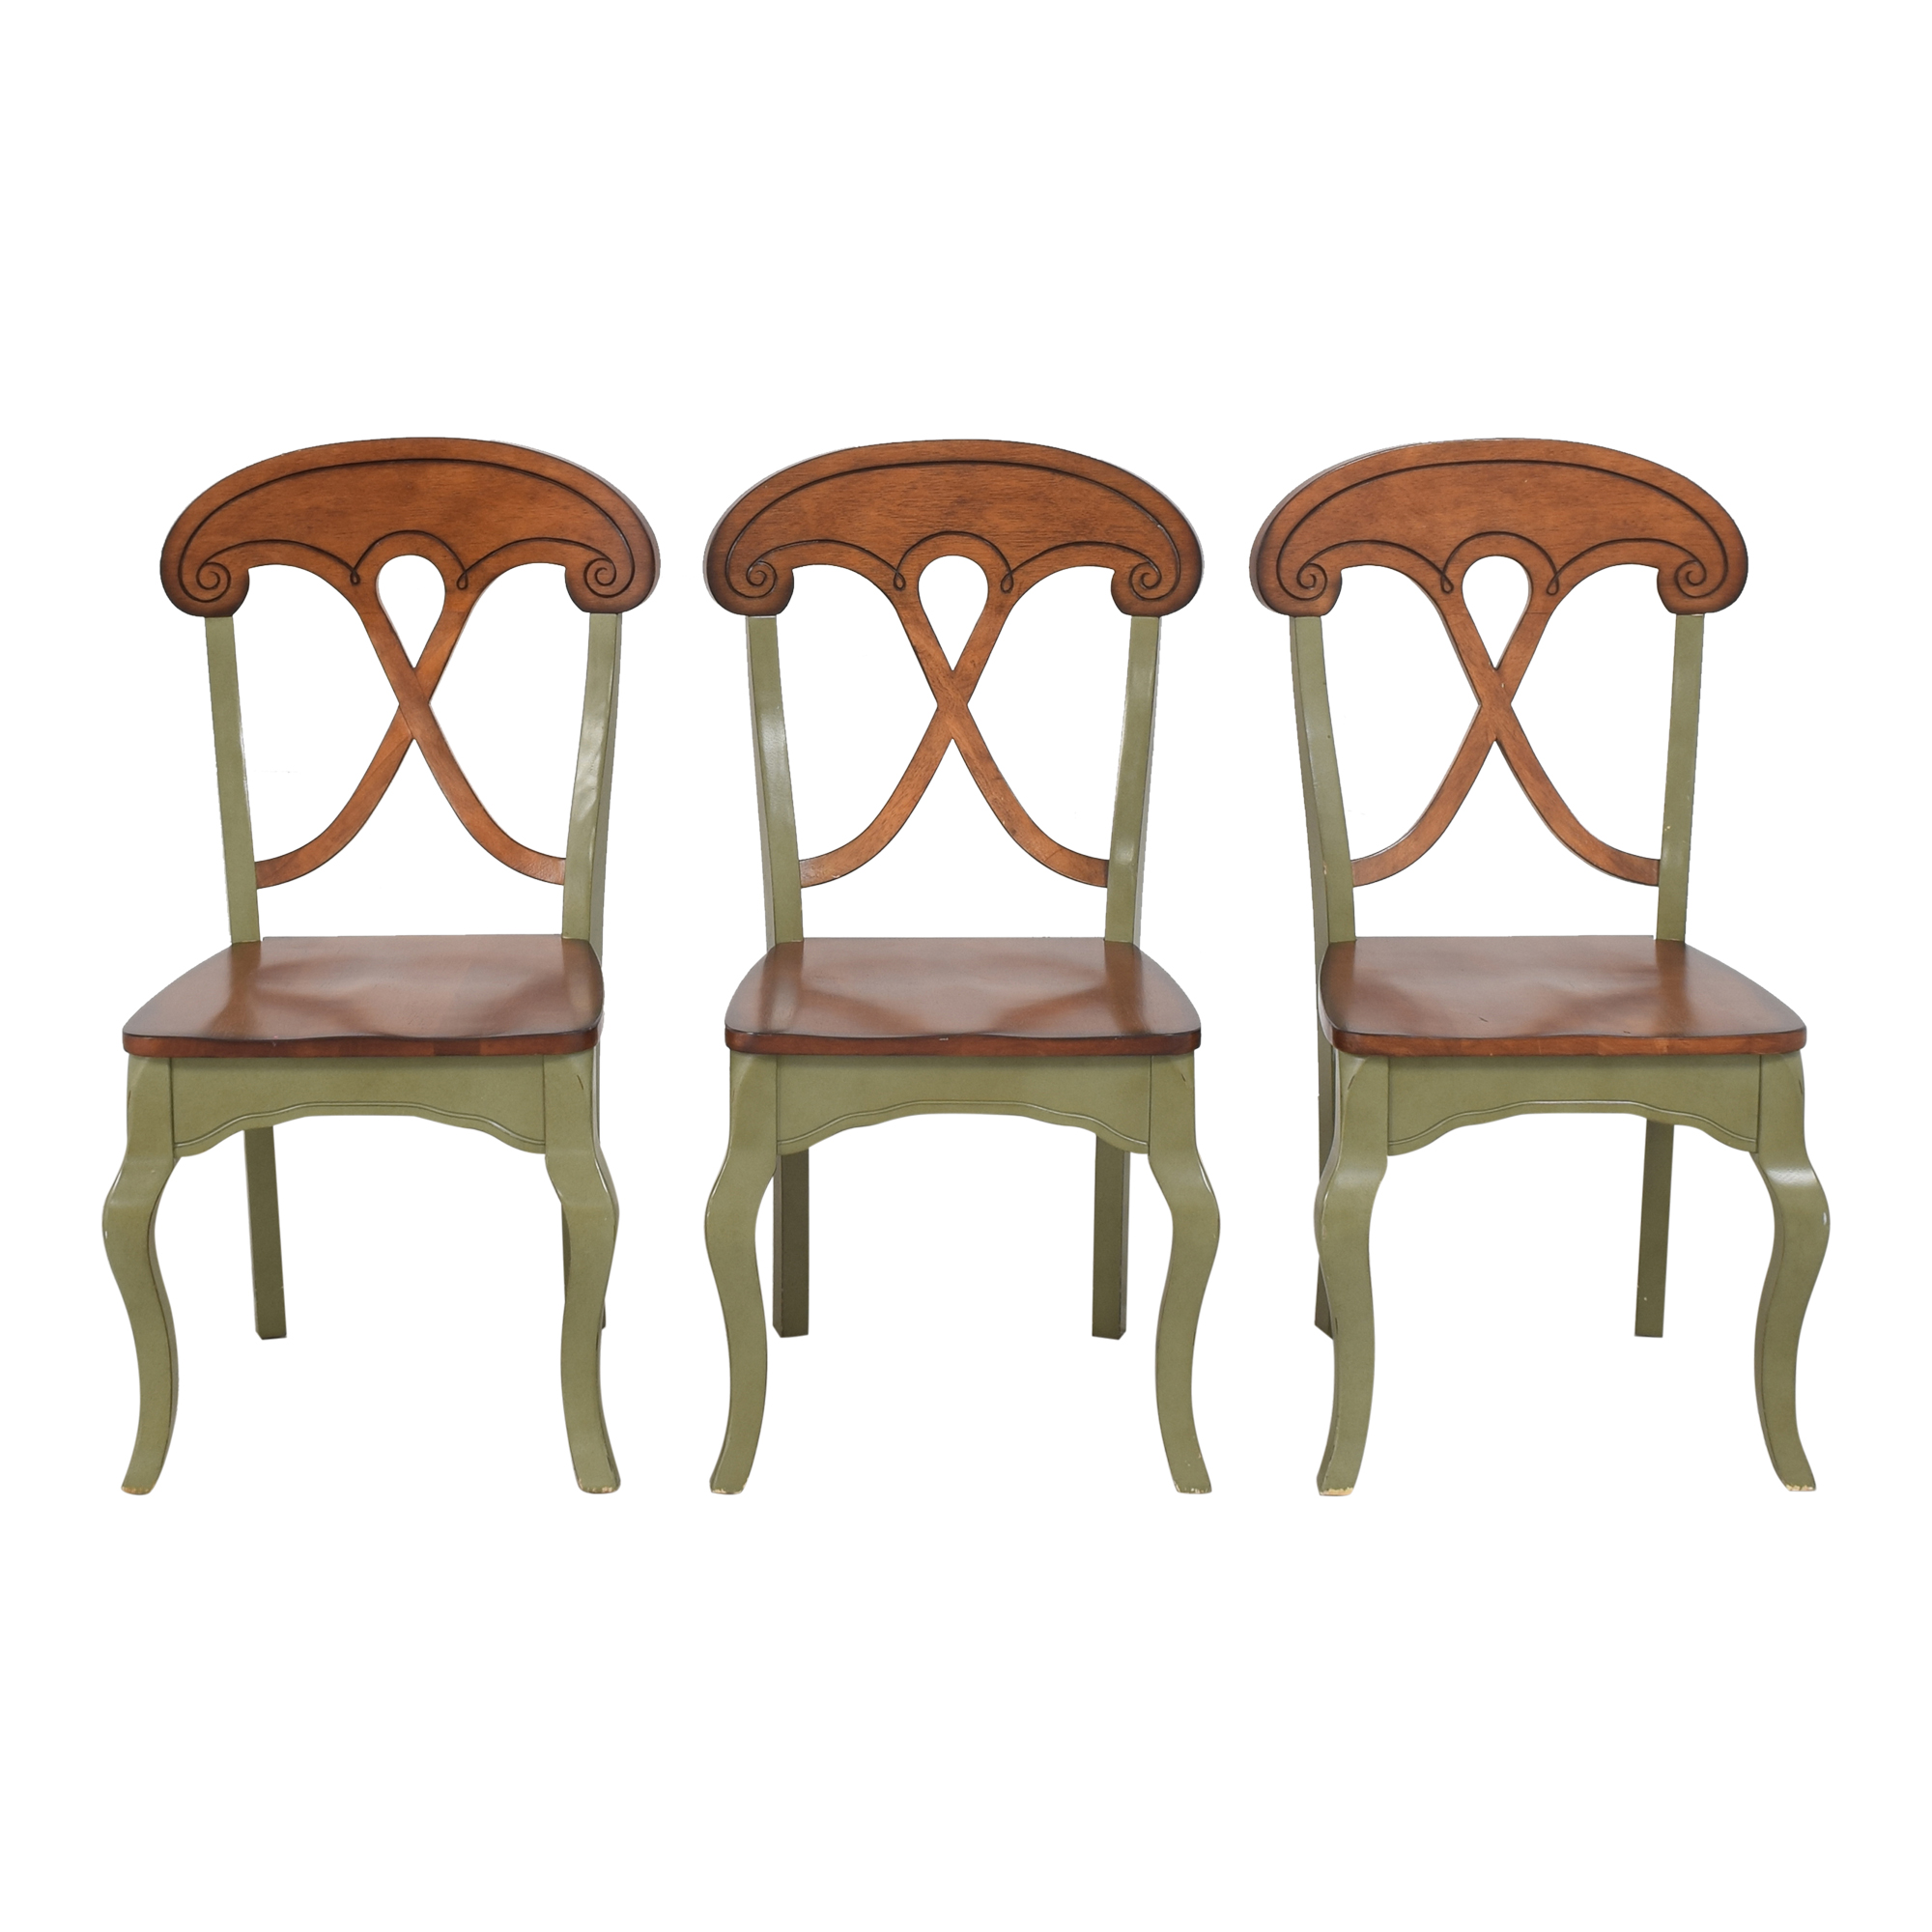 Pier 1 Pier 1 Marchella Dining Chairs nj